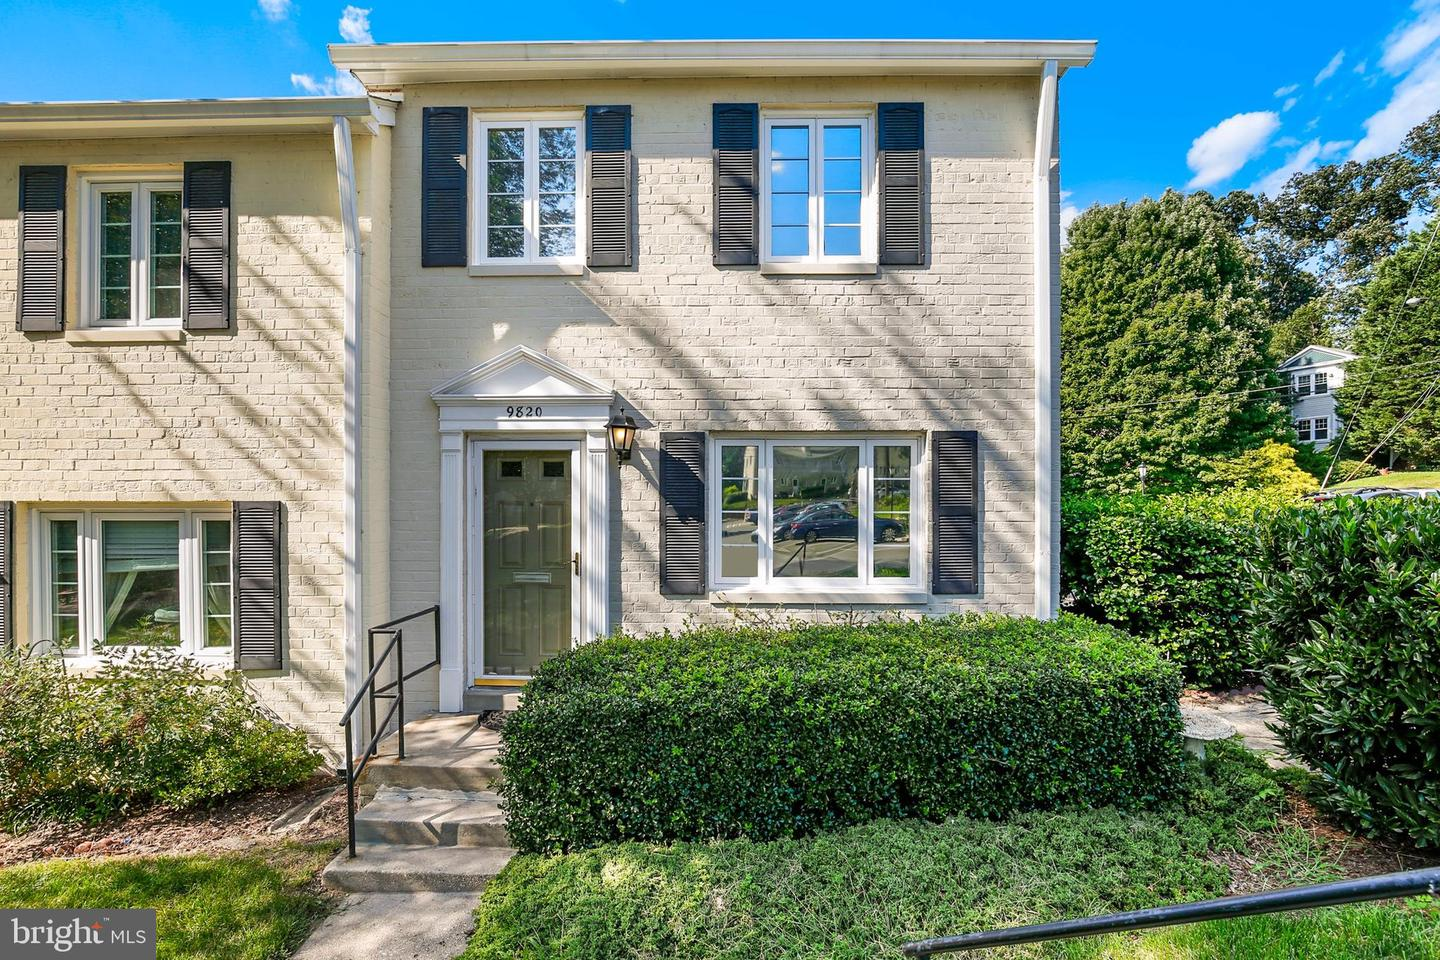 9820 Hollow Glen Place  #2554 - Silver Spring, Maryland 20910